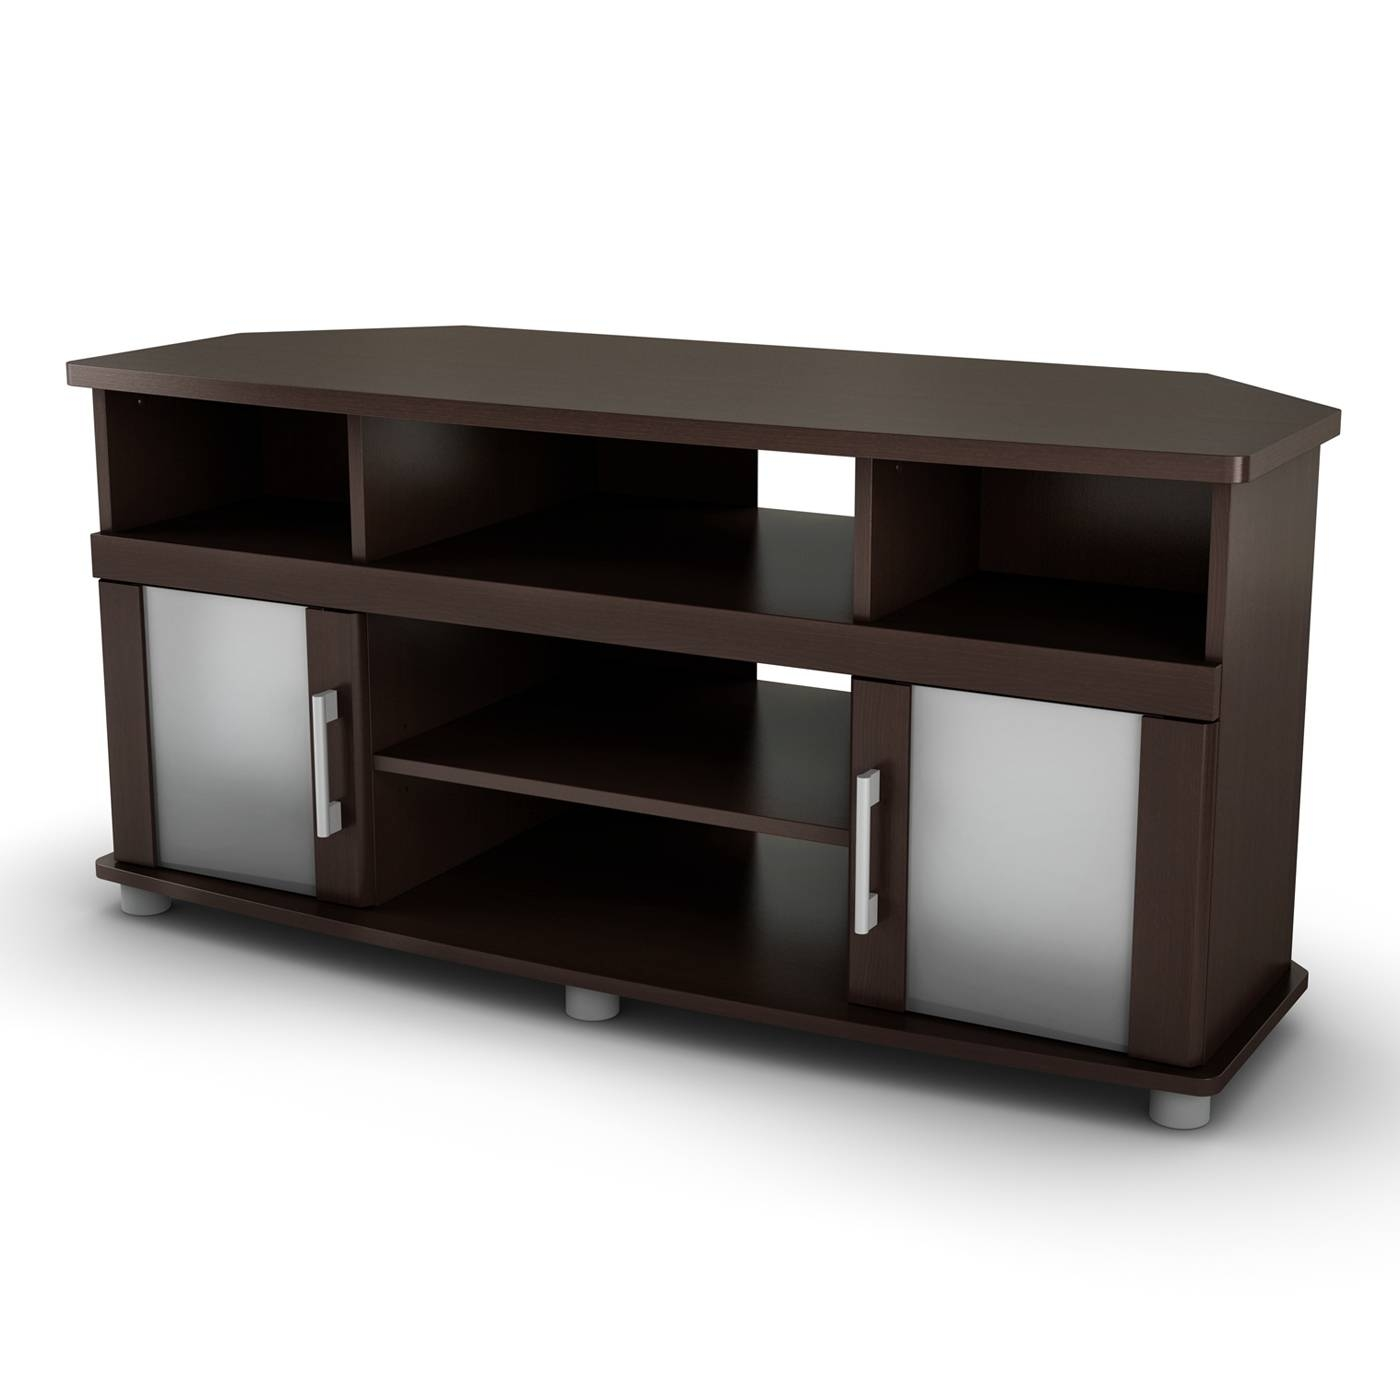 South Shore Furniture City Life Corner Tv Stand | Lowe's Canada Inside 50 Inch Corner Tv Cabinets (View 12 of 15)